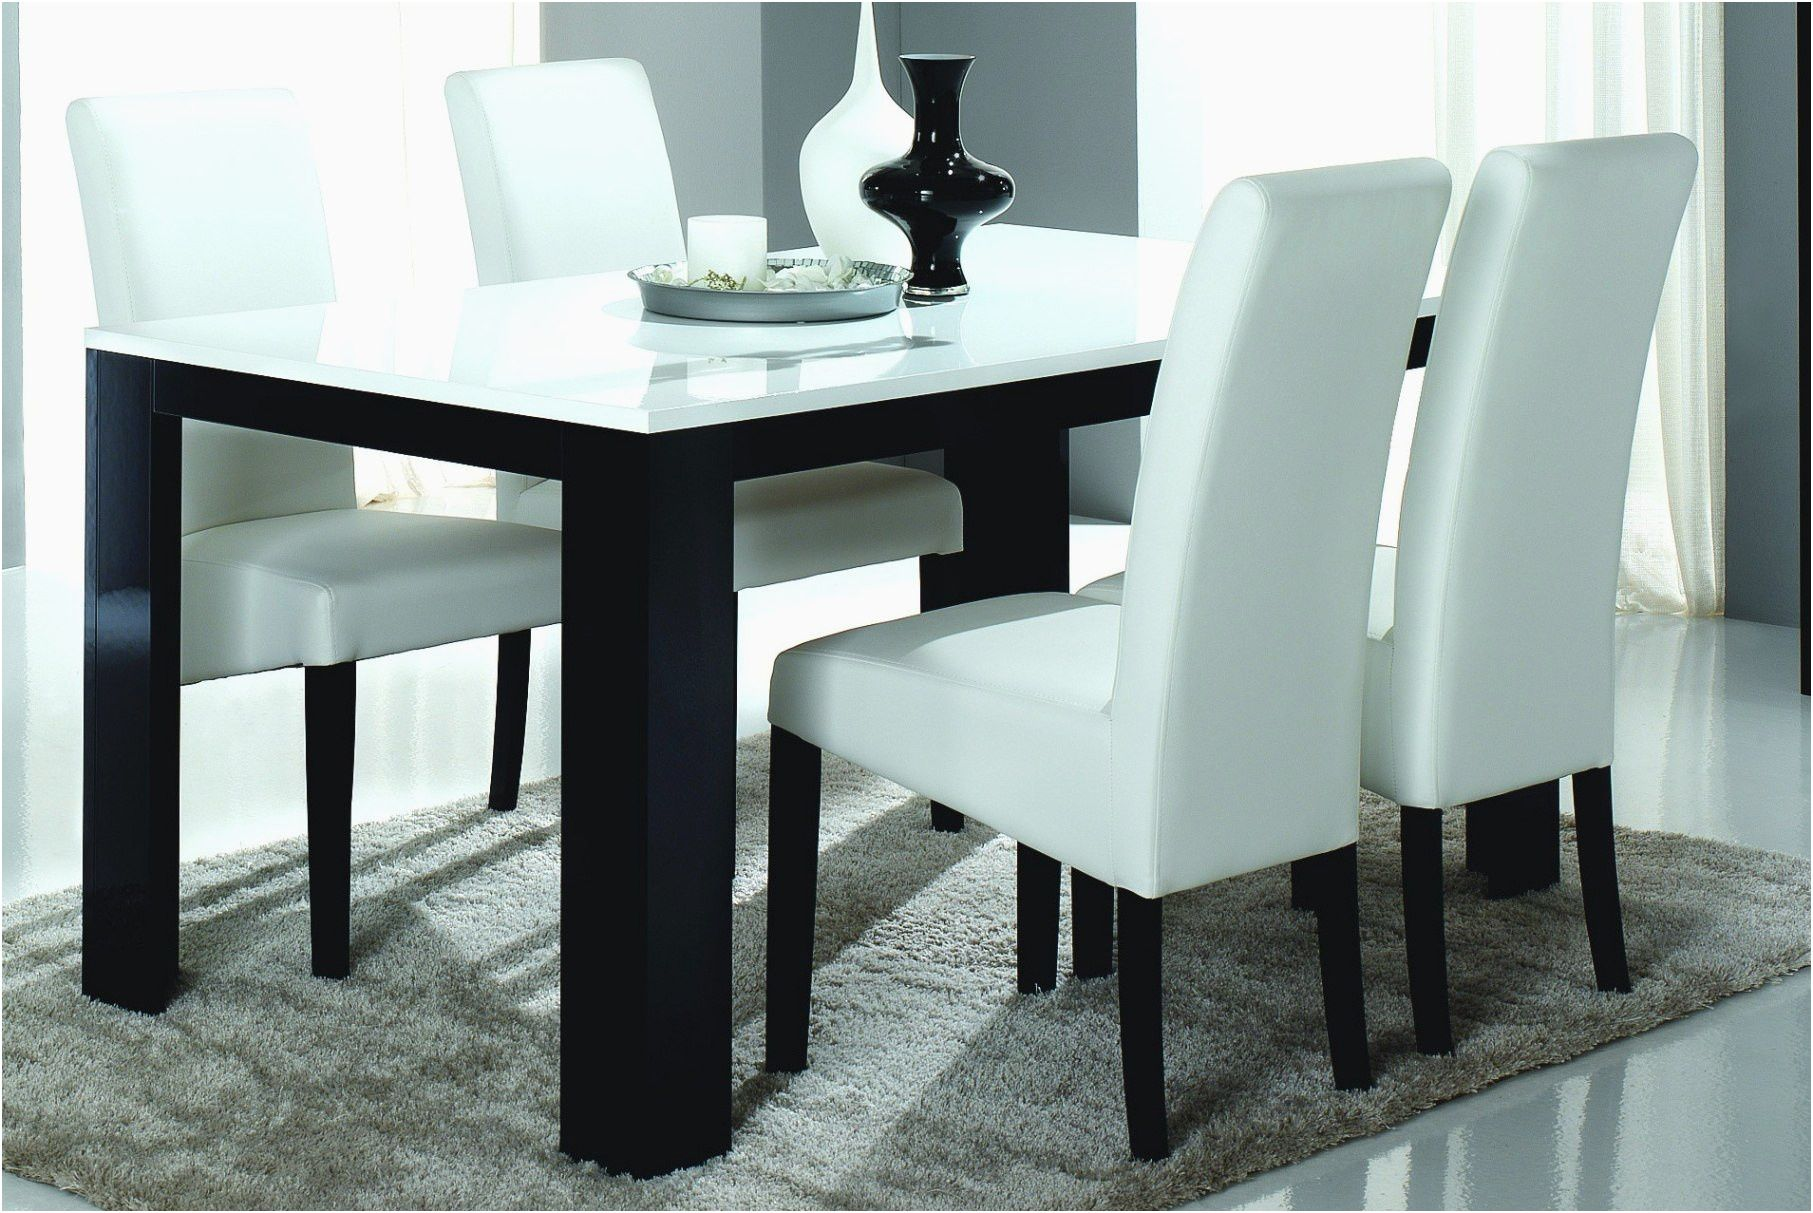 10 Amusant Table Carree Extensible Ikea Photograph Salle A Manger Design Table Salle A Manger Meuble